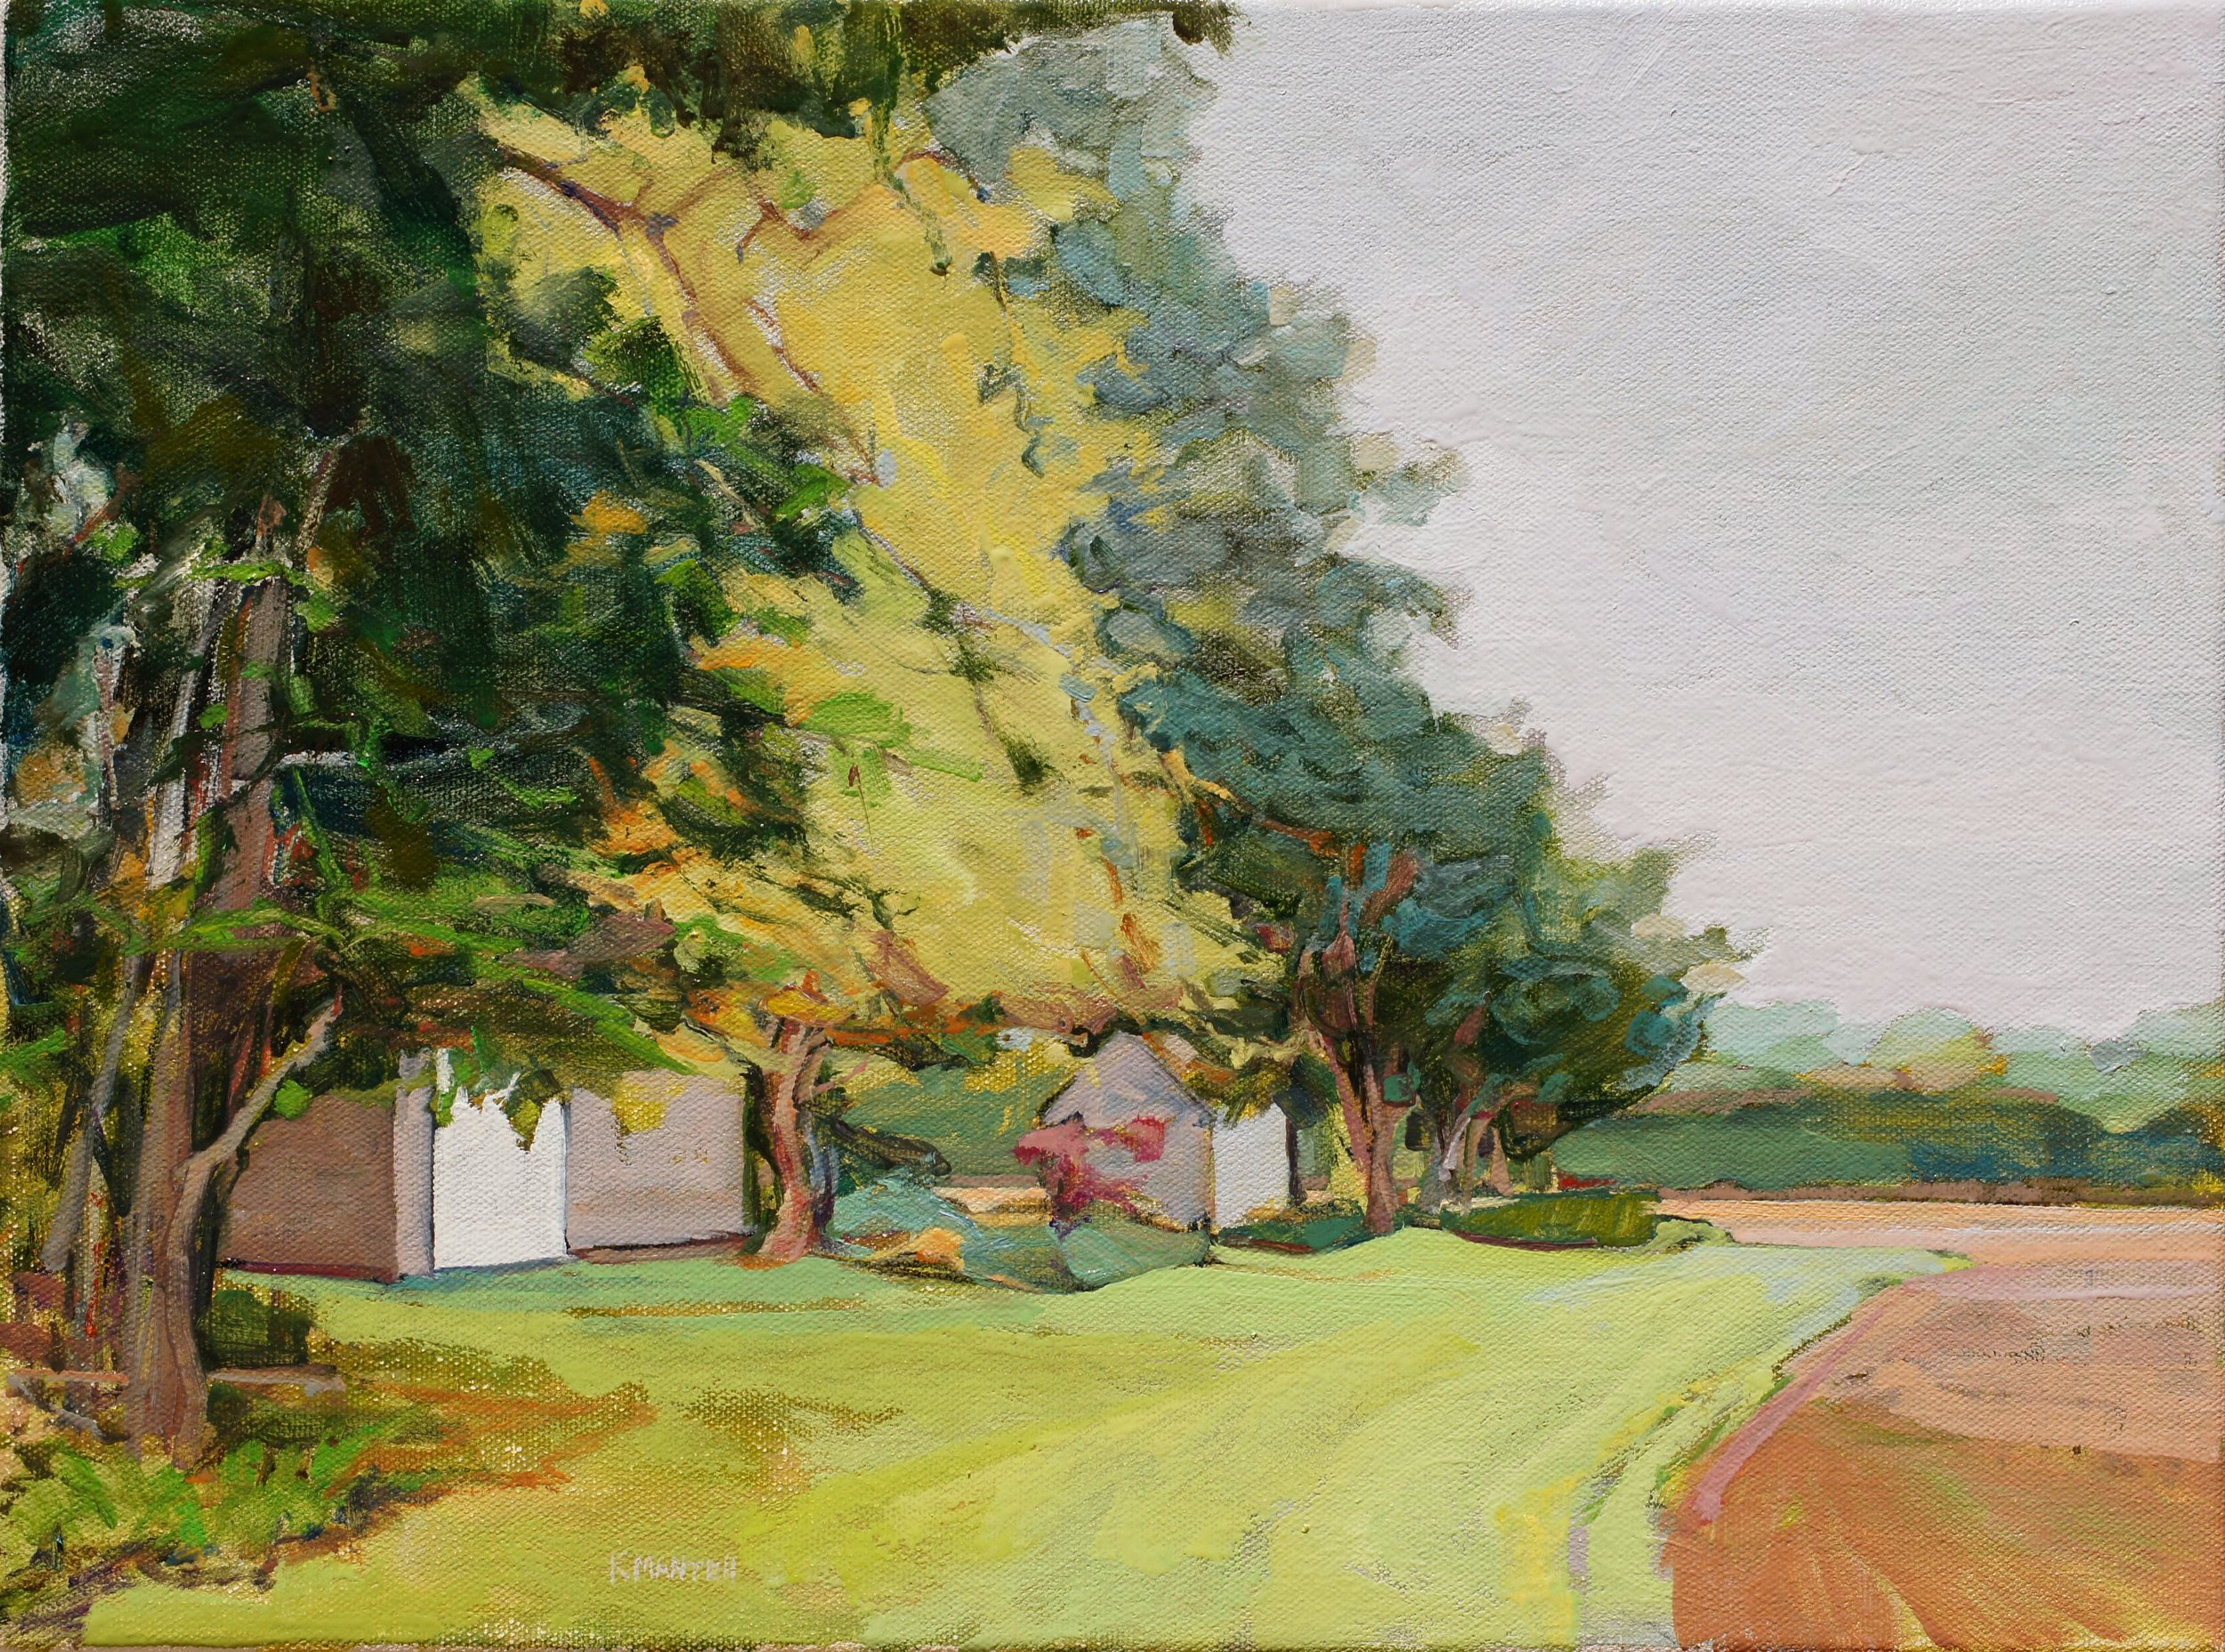 South on Townline, 12x16